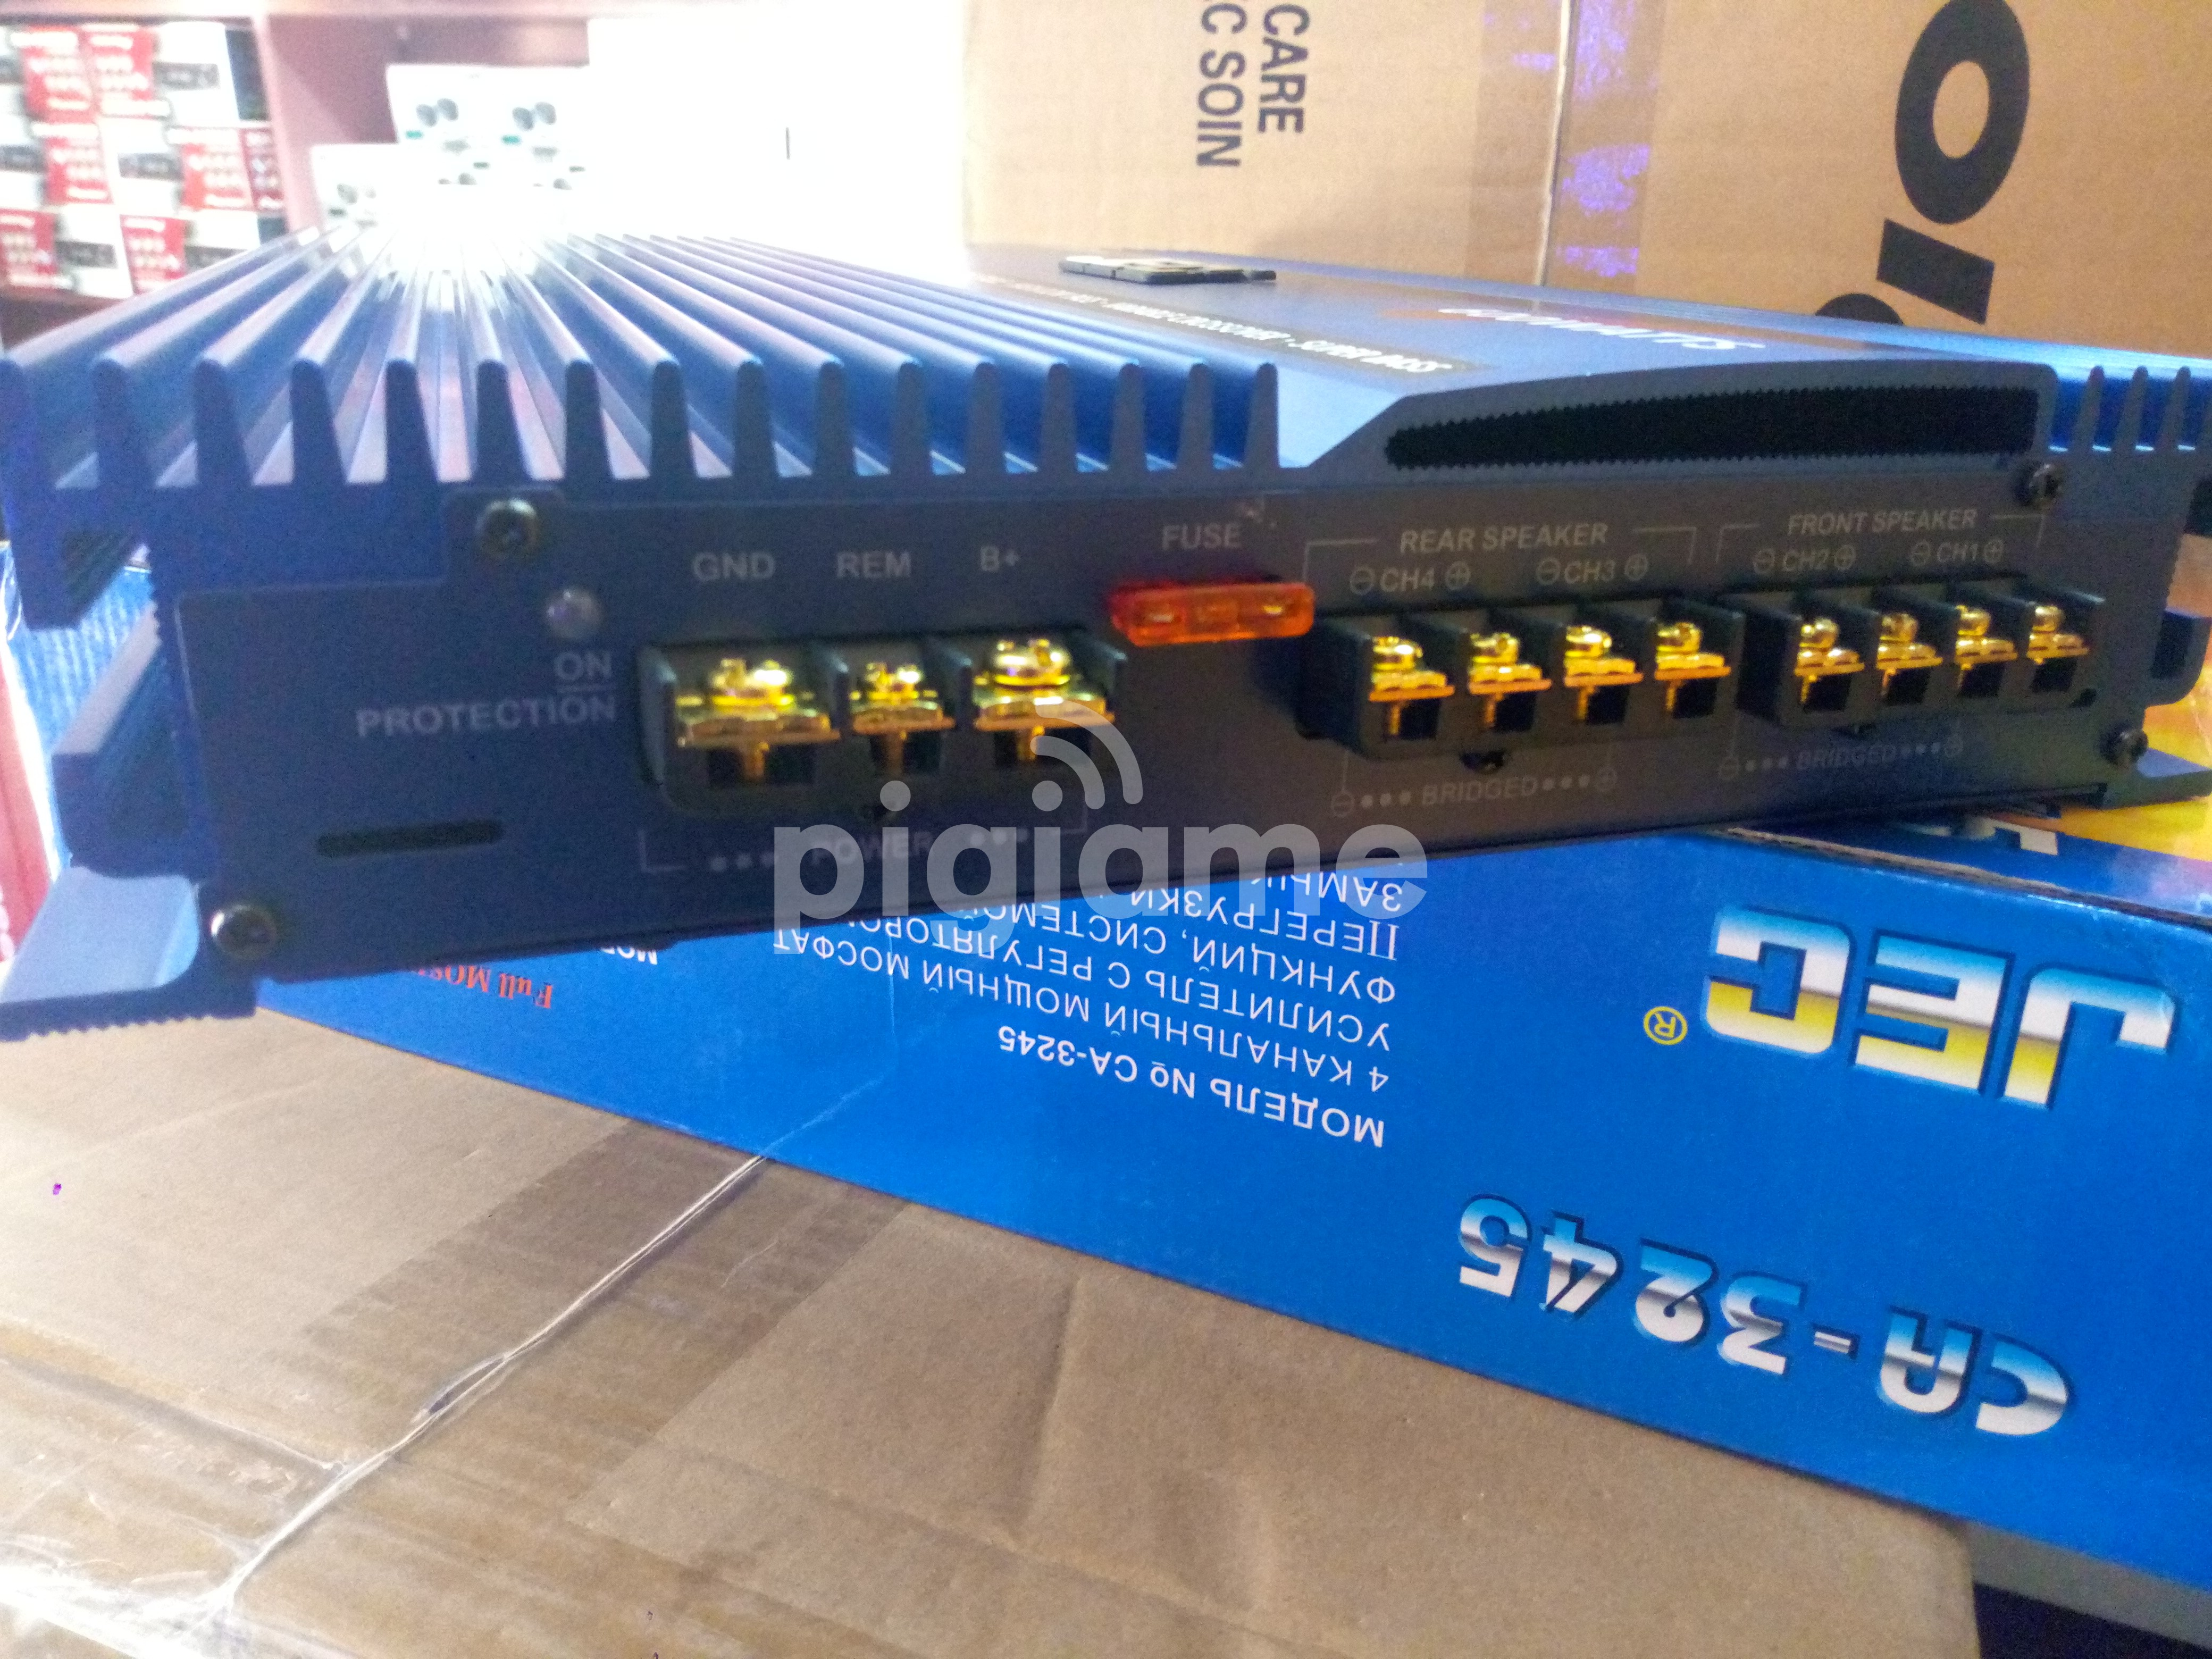 New JEC CA-3245 4 Channel Car Amplifier-600w at KSh 11,500